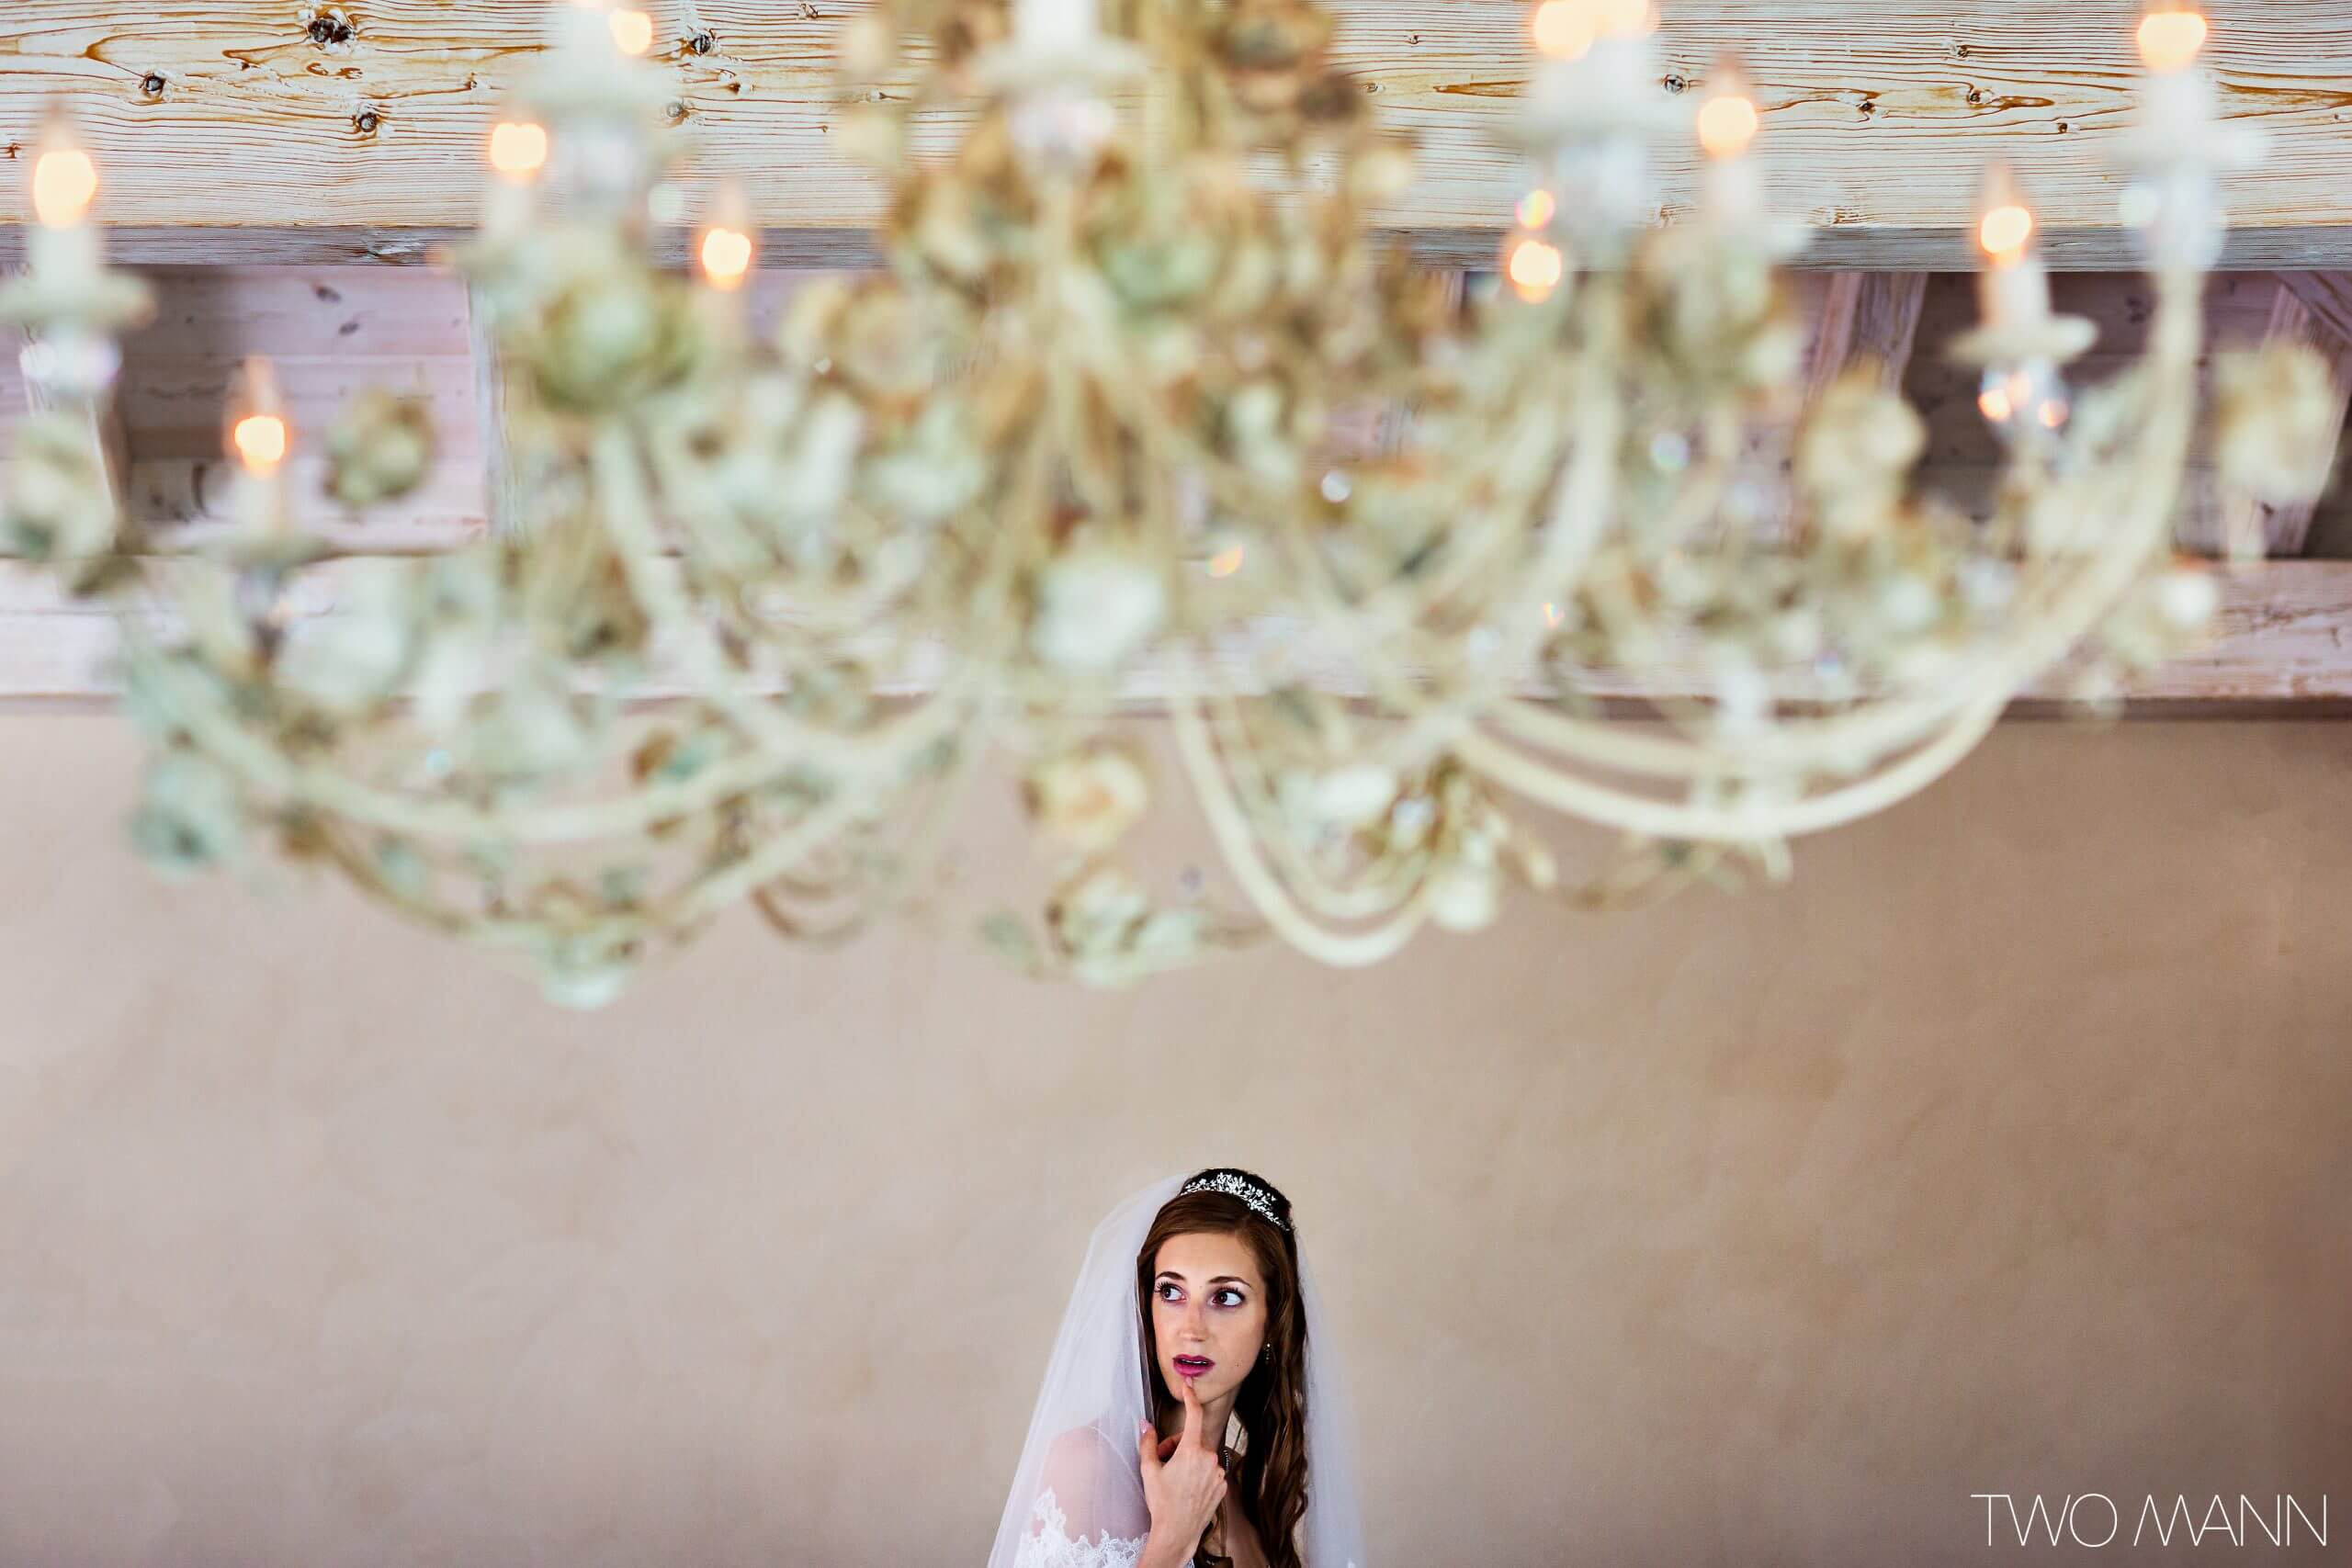 A bride waiting for the ceremony